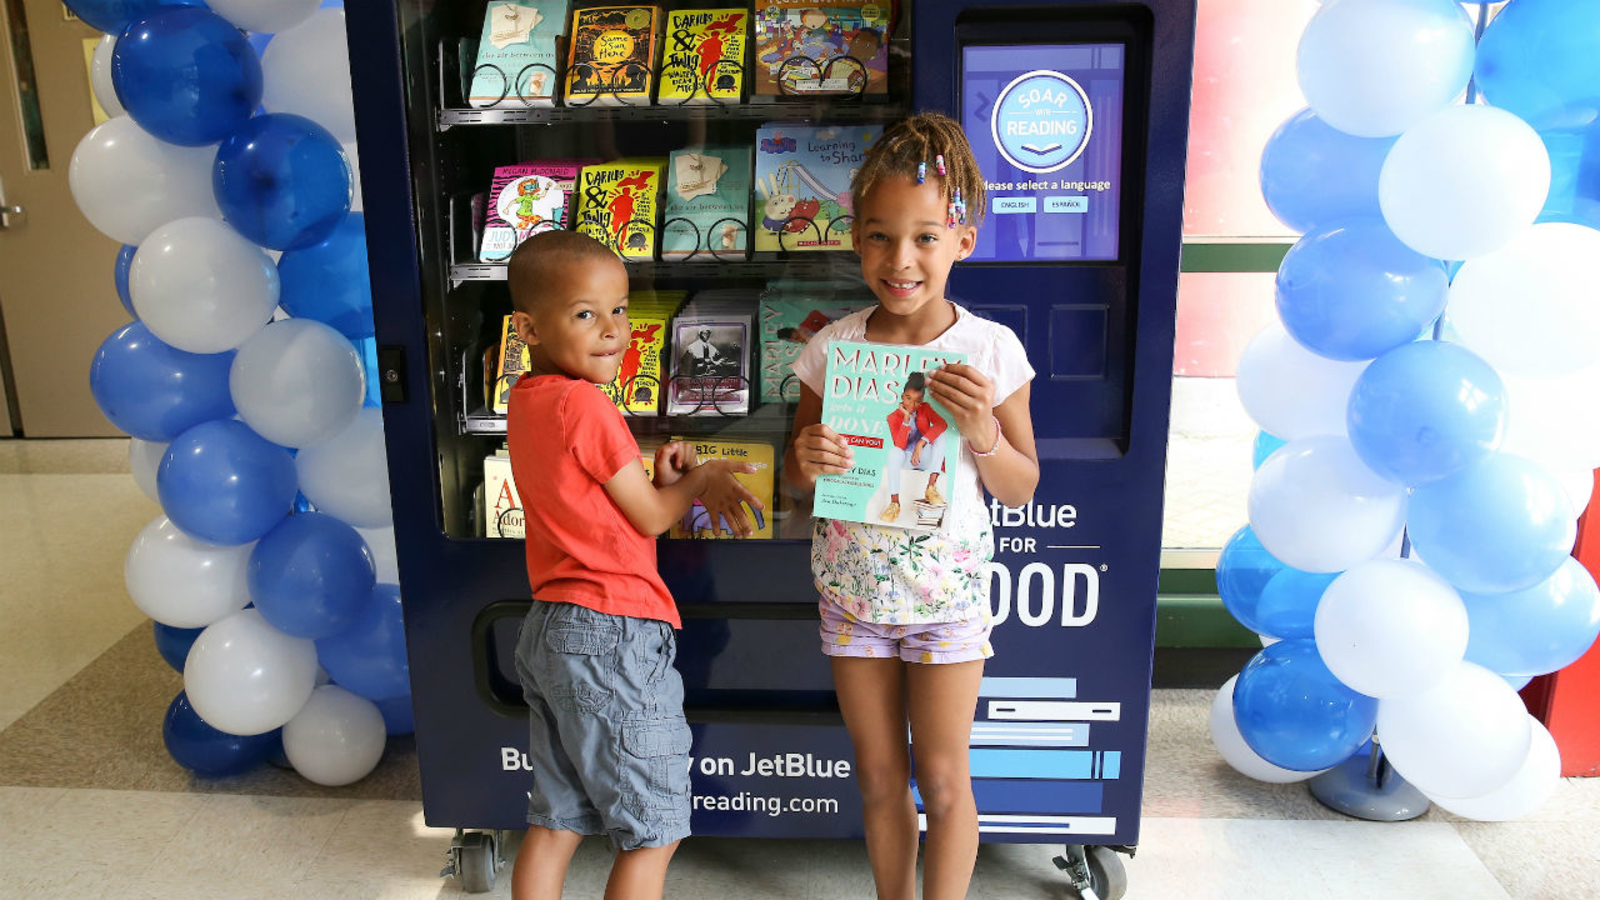 Vending machines filled with free books come to New York City